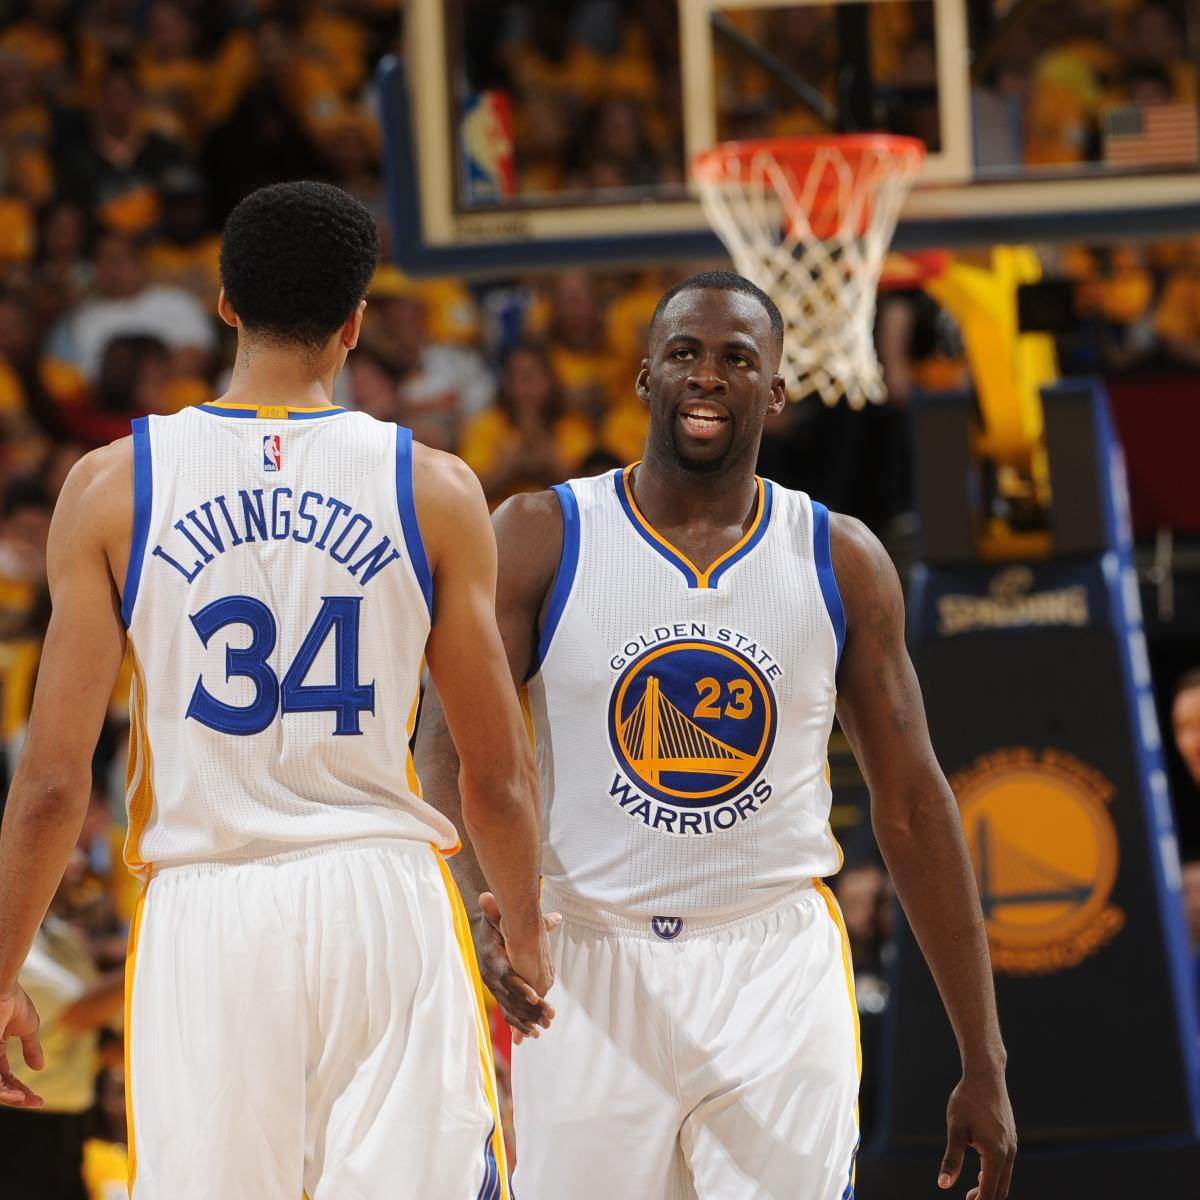 Houston Rockets Vs. Golden State Warriors: Live Score